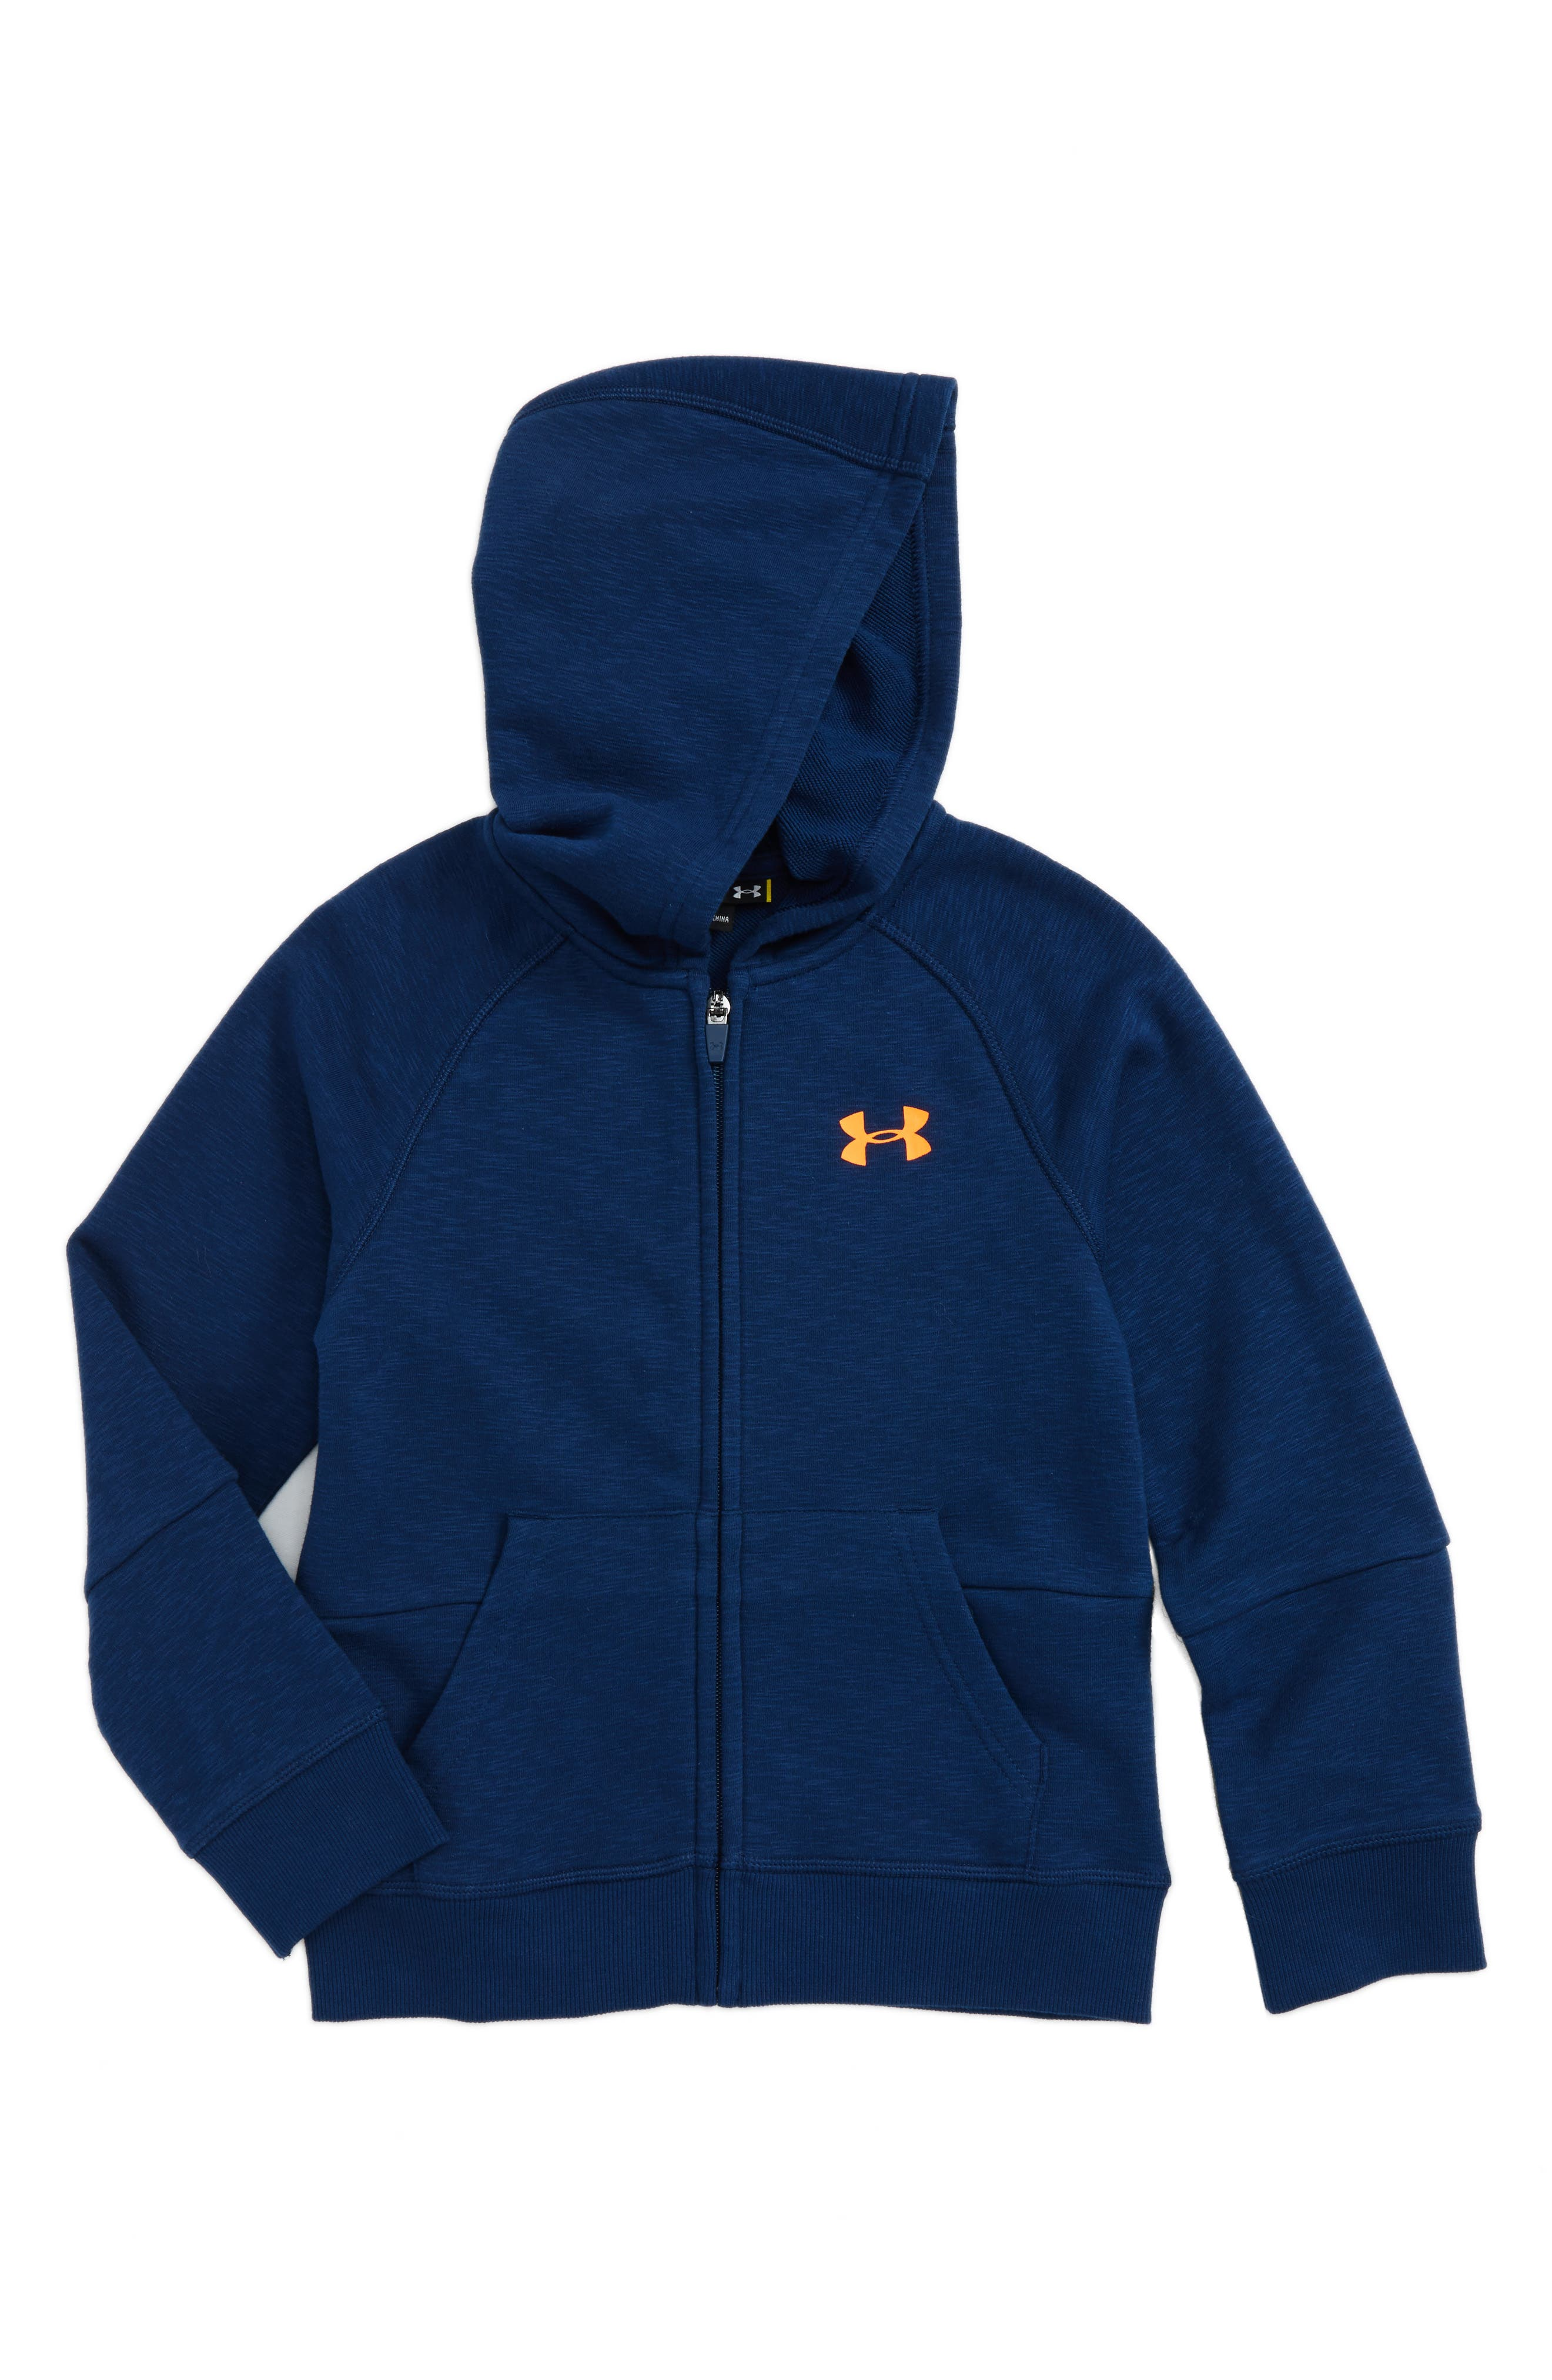 Under Armour Color Pop Logo Sweatshirt Hoodie (Toddler Boys & Little Boys)